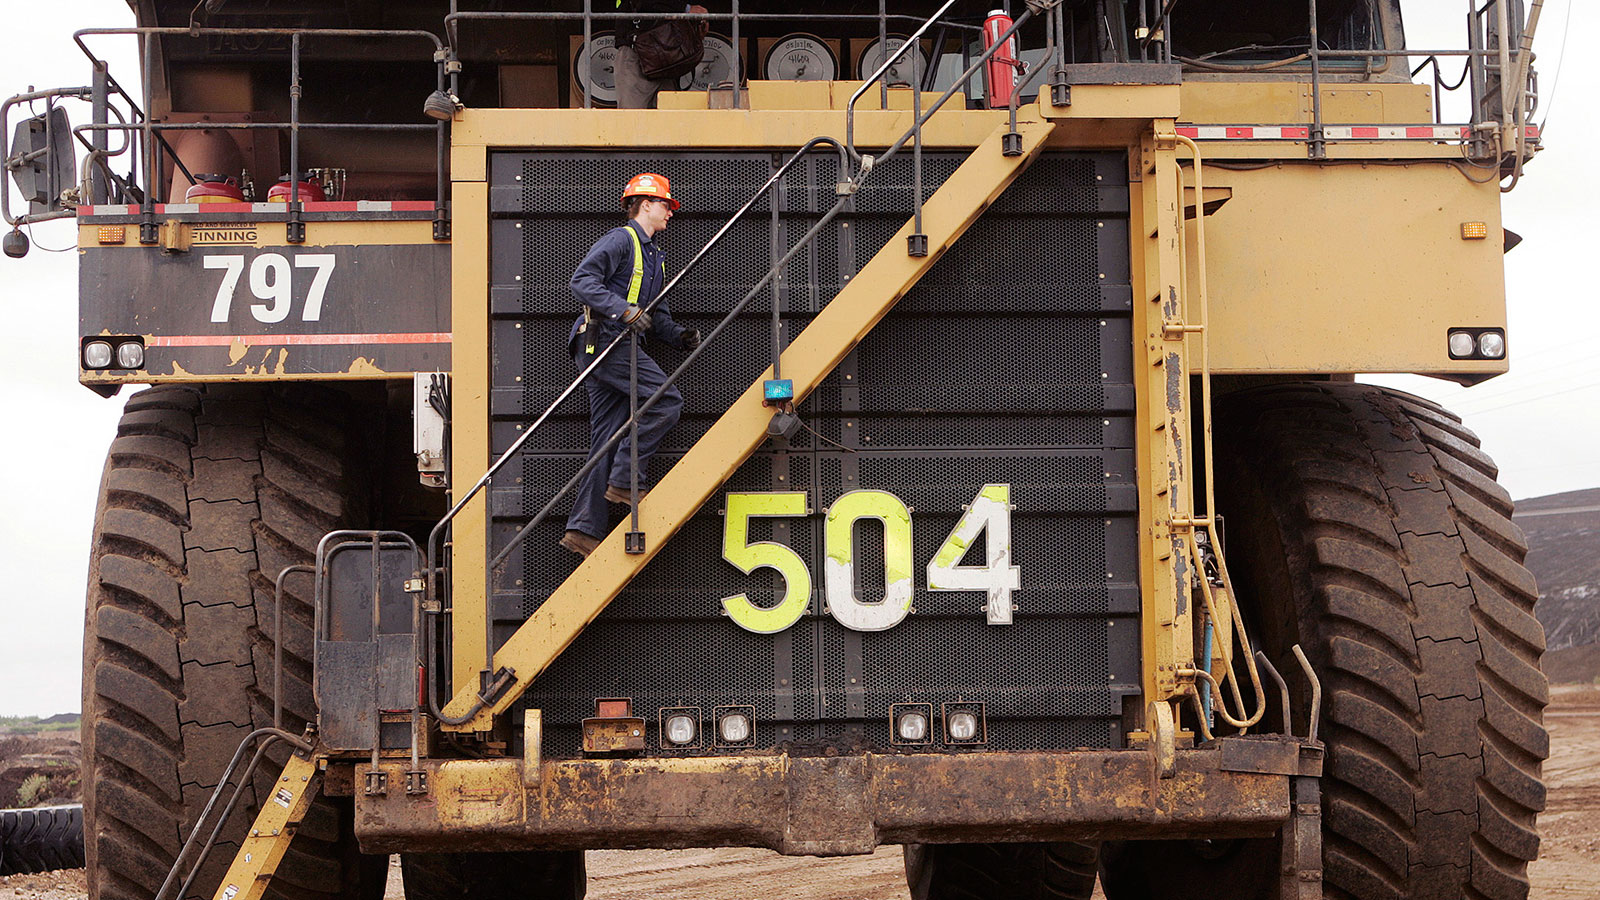 Michelle Noer climbs the steps to the world's largest dump truck at the Syncrude Aurora mine near Fort McMurray, Alta. (Todd Korol/Reuters)